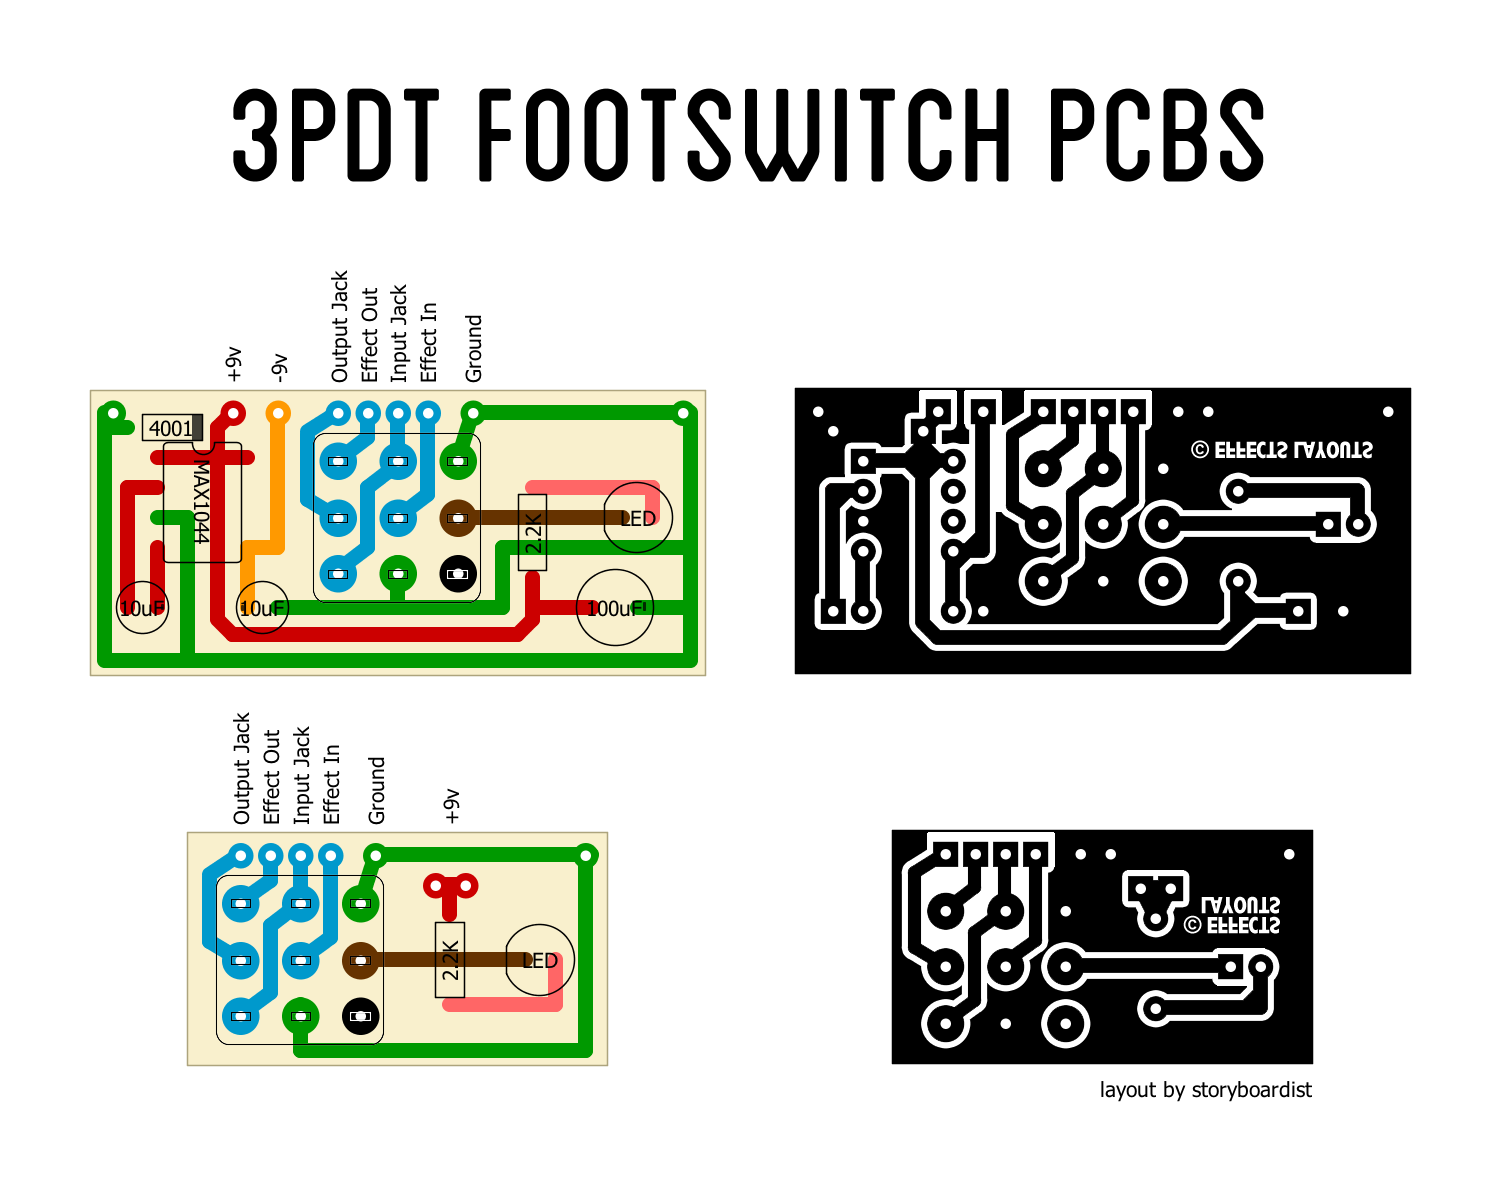 3pdt guitar pedal footswitch wiring pcb schematics  Google Search | DIY FX | Guitar pedals, Diy